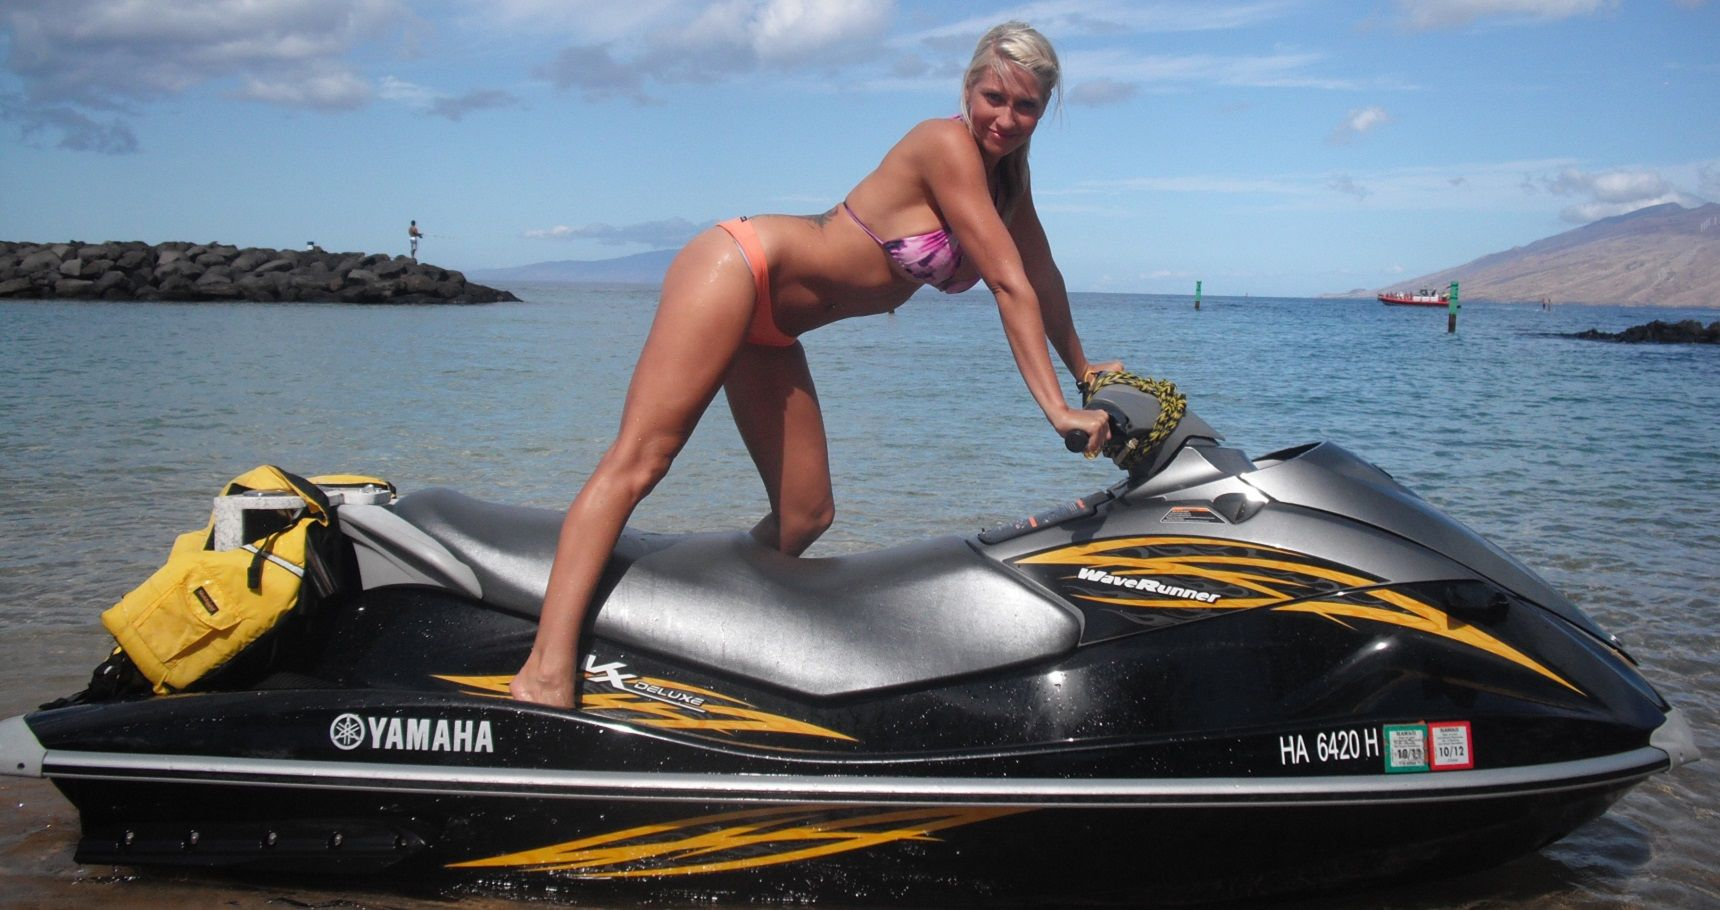 Top 10 Most Luxurious Jet Skis